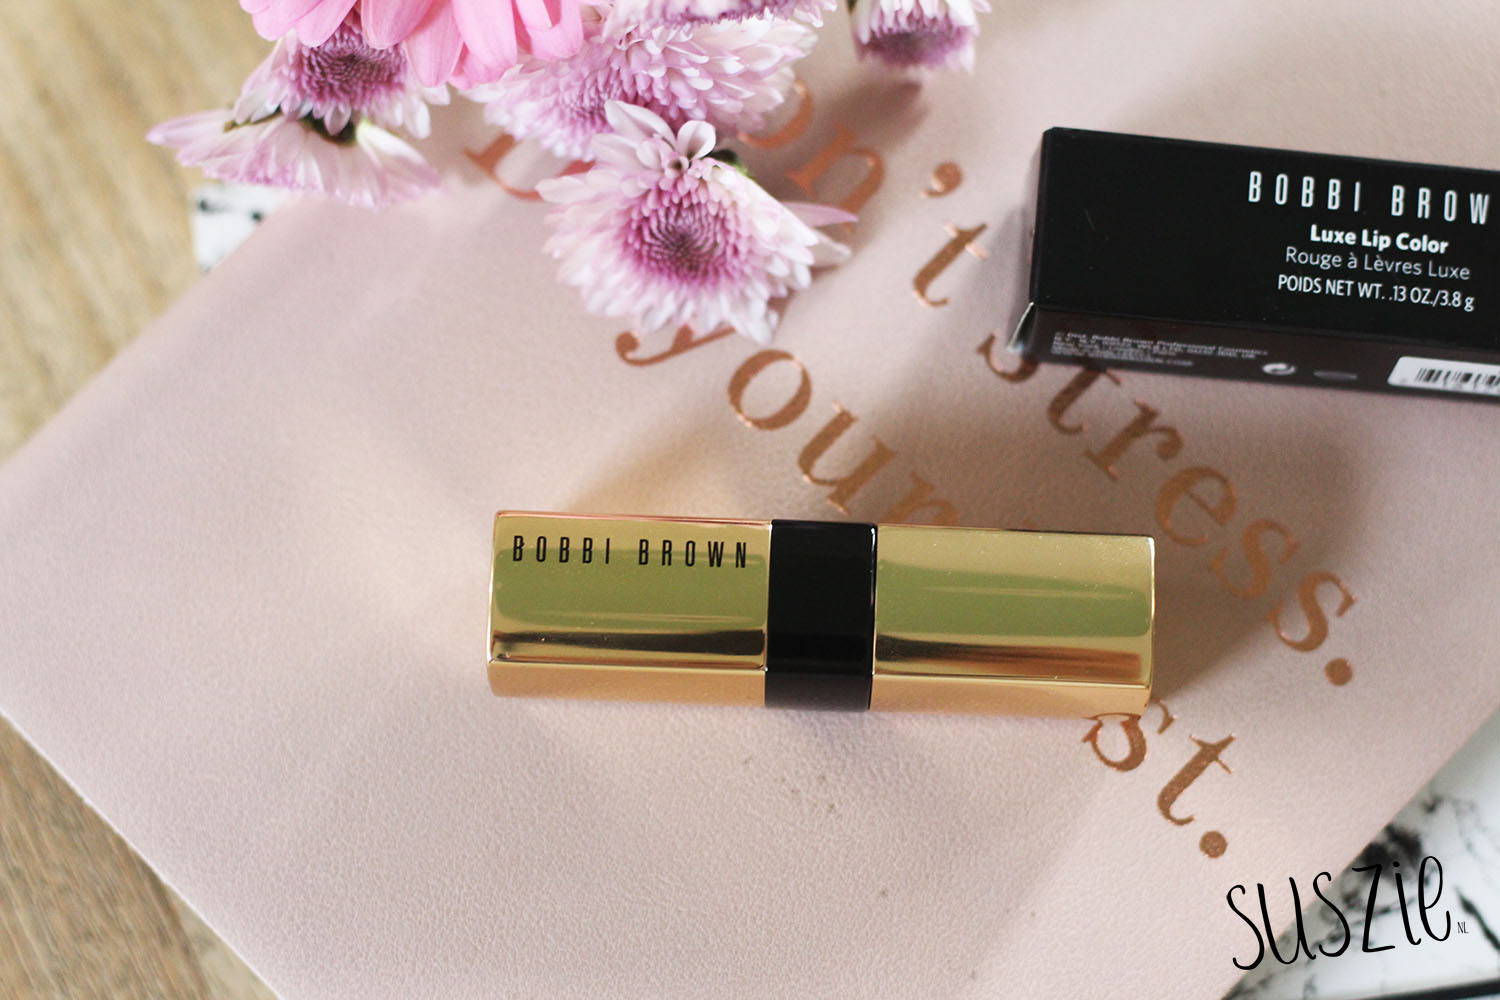 Bobbi Brown Luxe Lip Color 15 Brocade